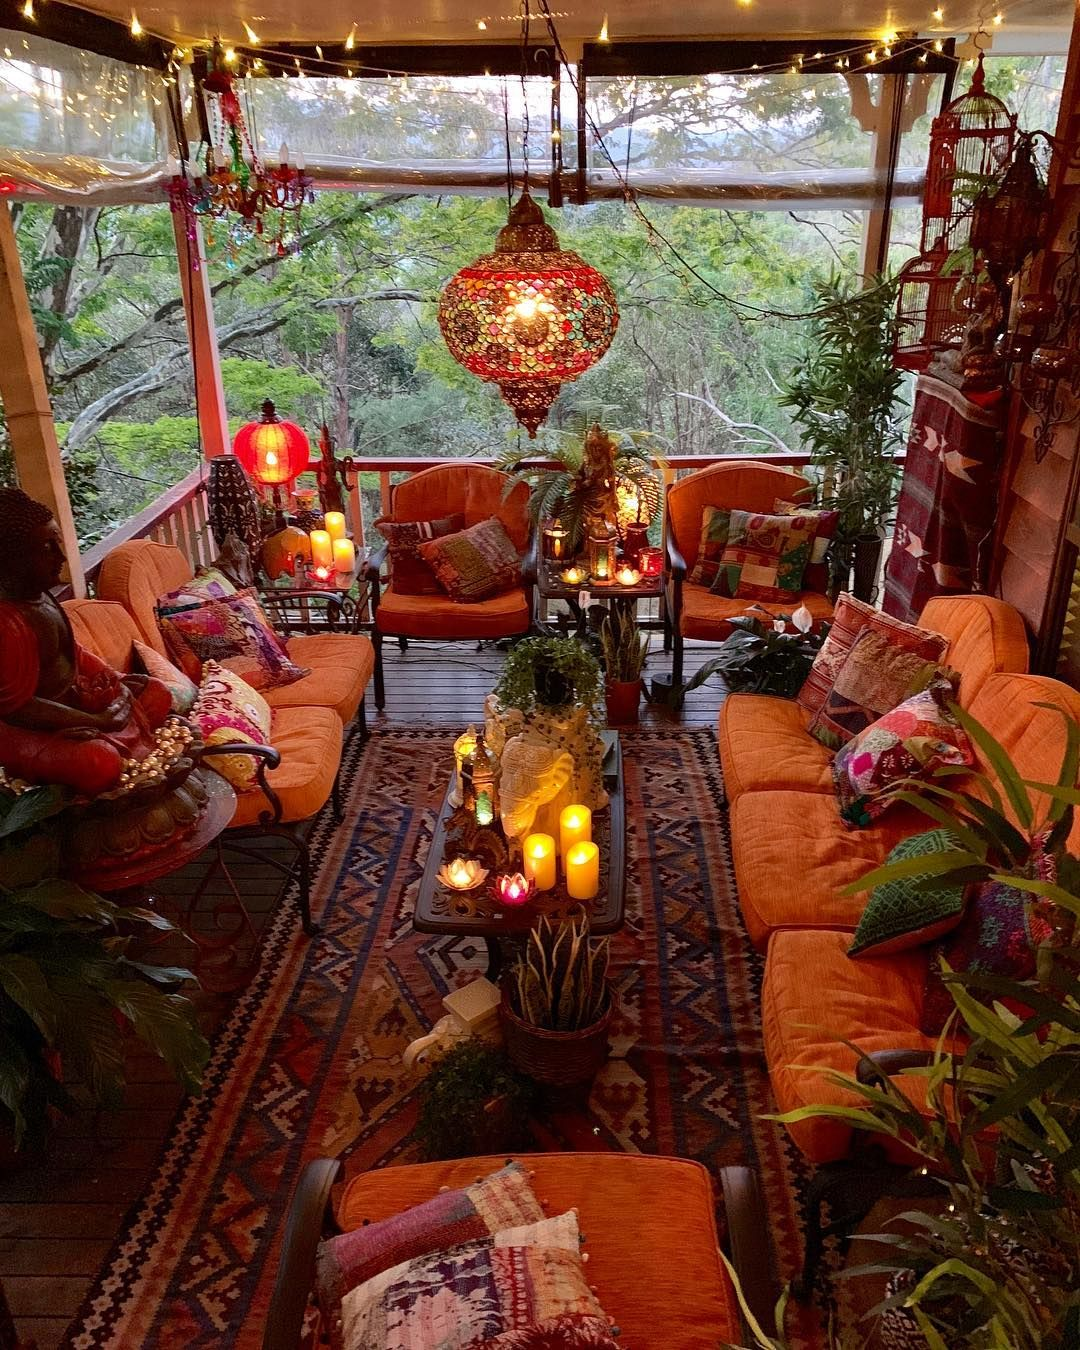 17 Lively Shabby Chic Garden Designs That Will Relax And: So Here Is My Verandah Just Coming On Dusk. At The Moment